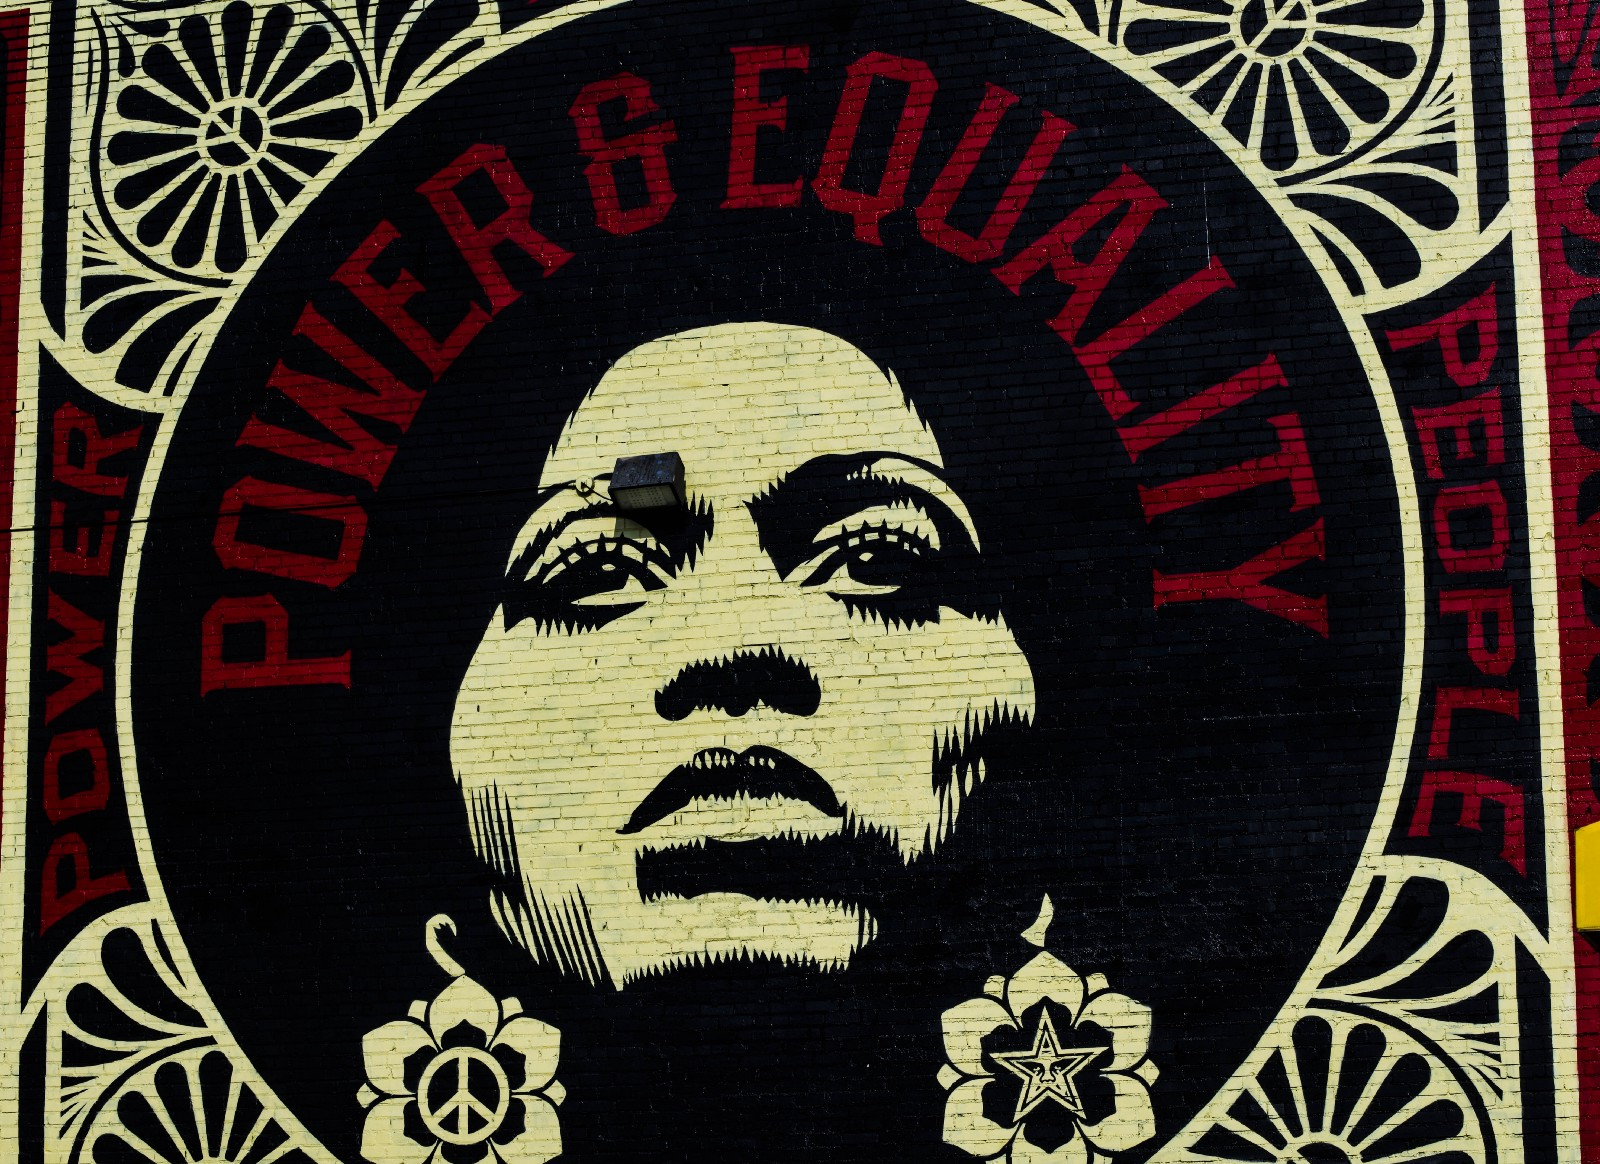 Power & Equality mural